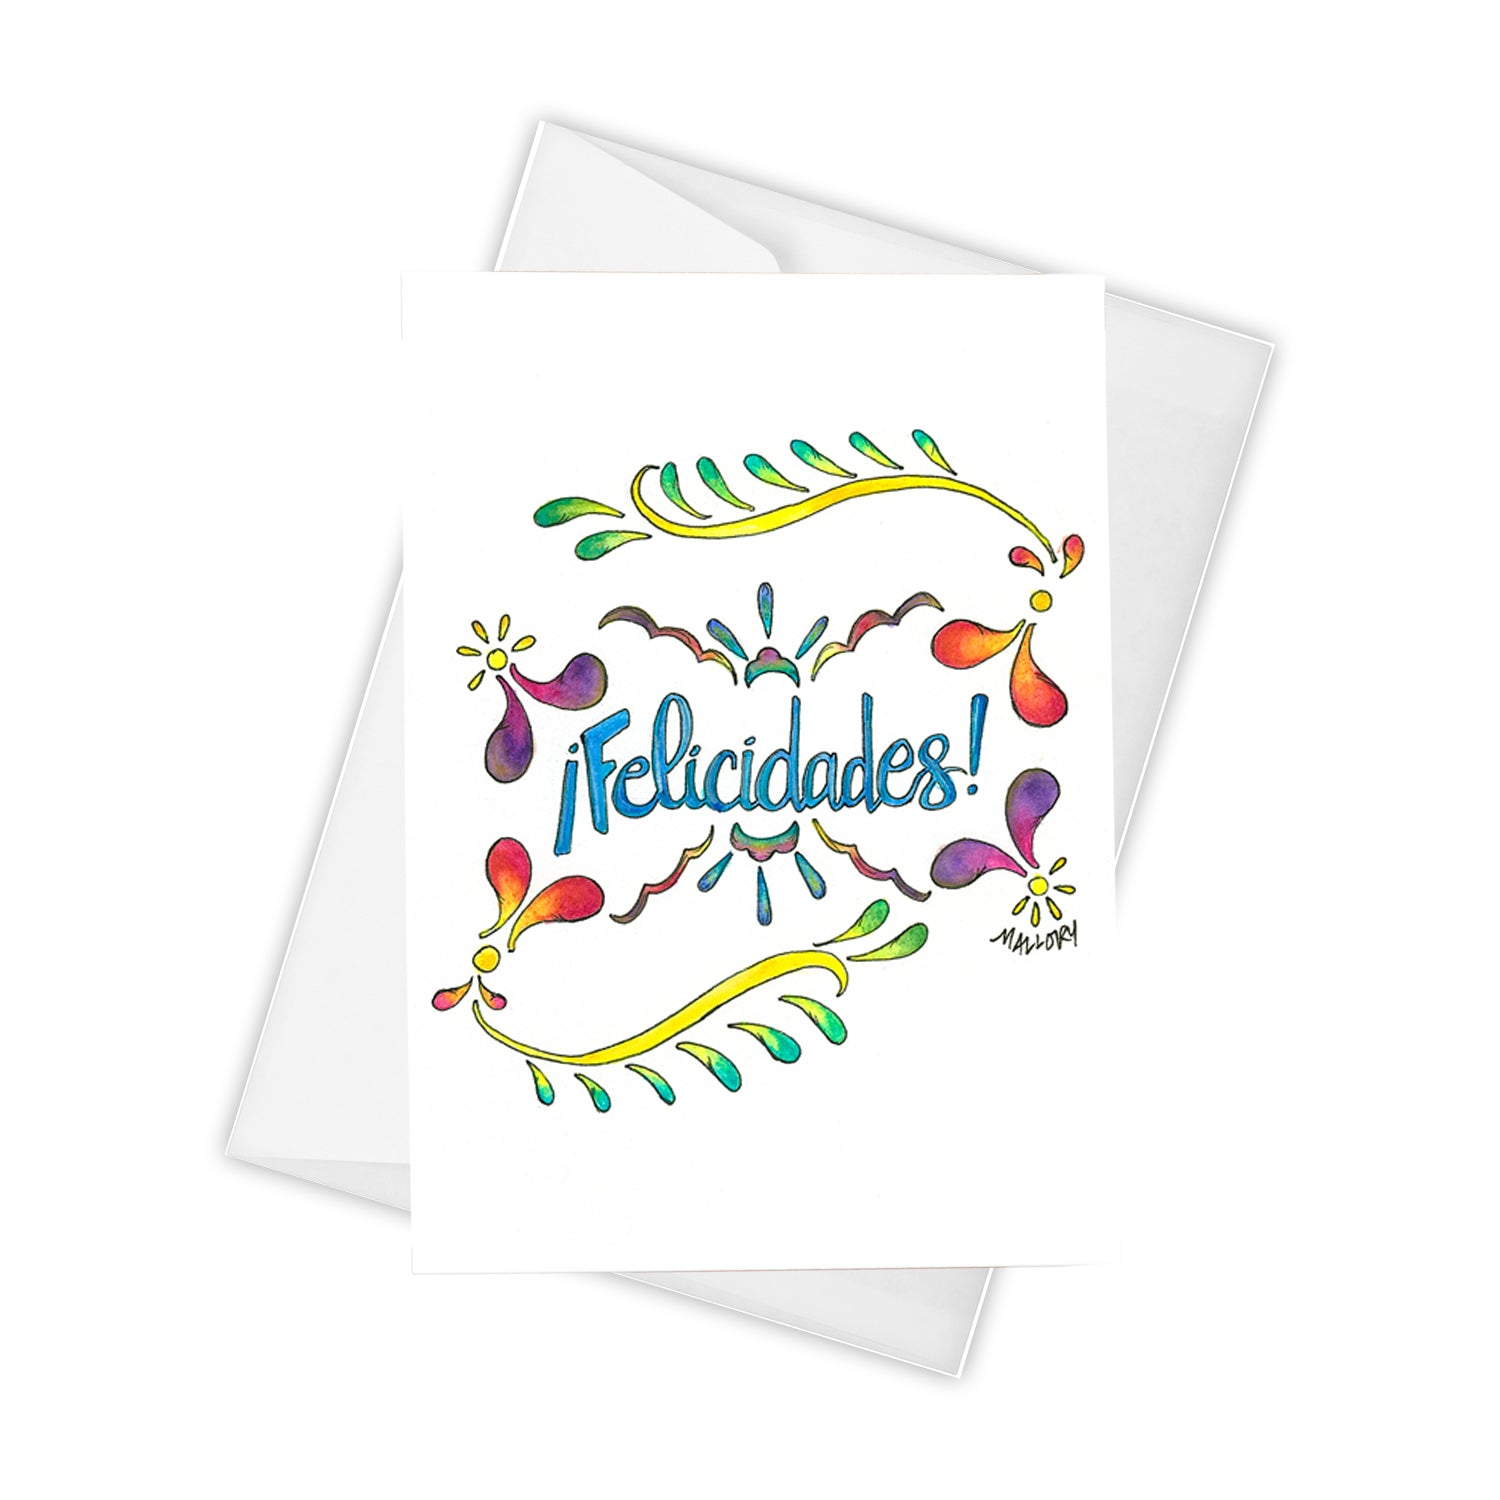 Handmade graduation card, beautiful card for graduation